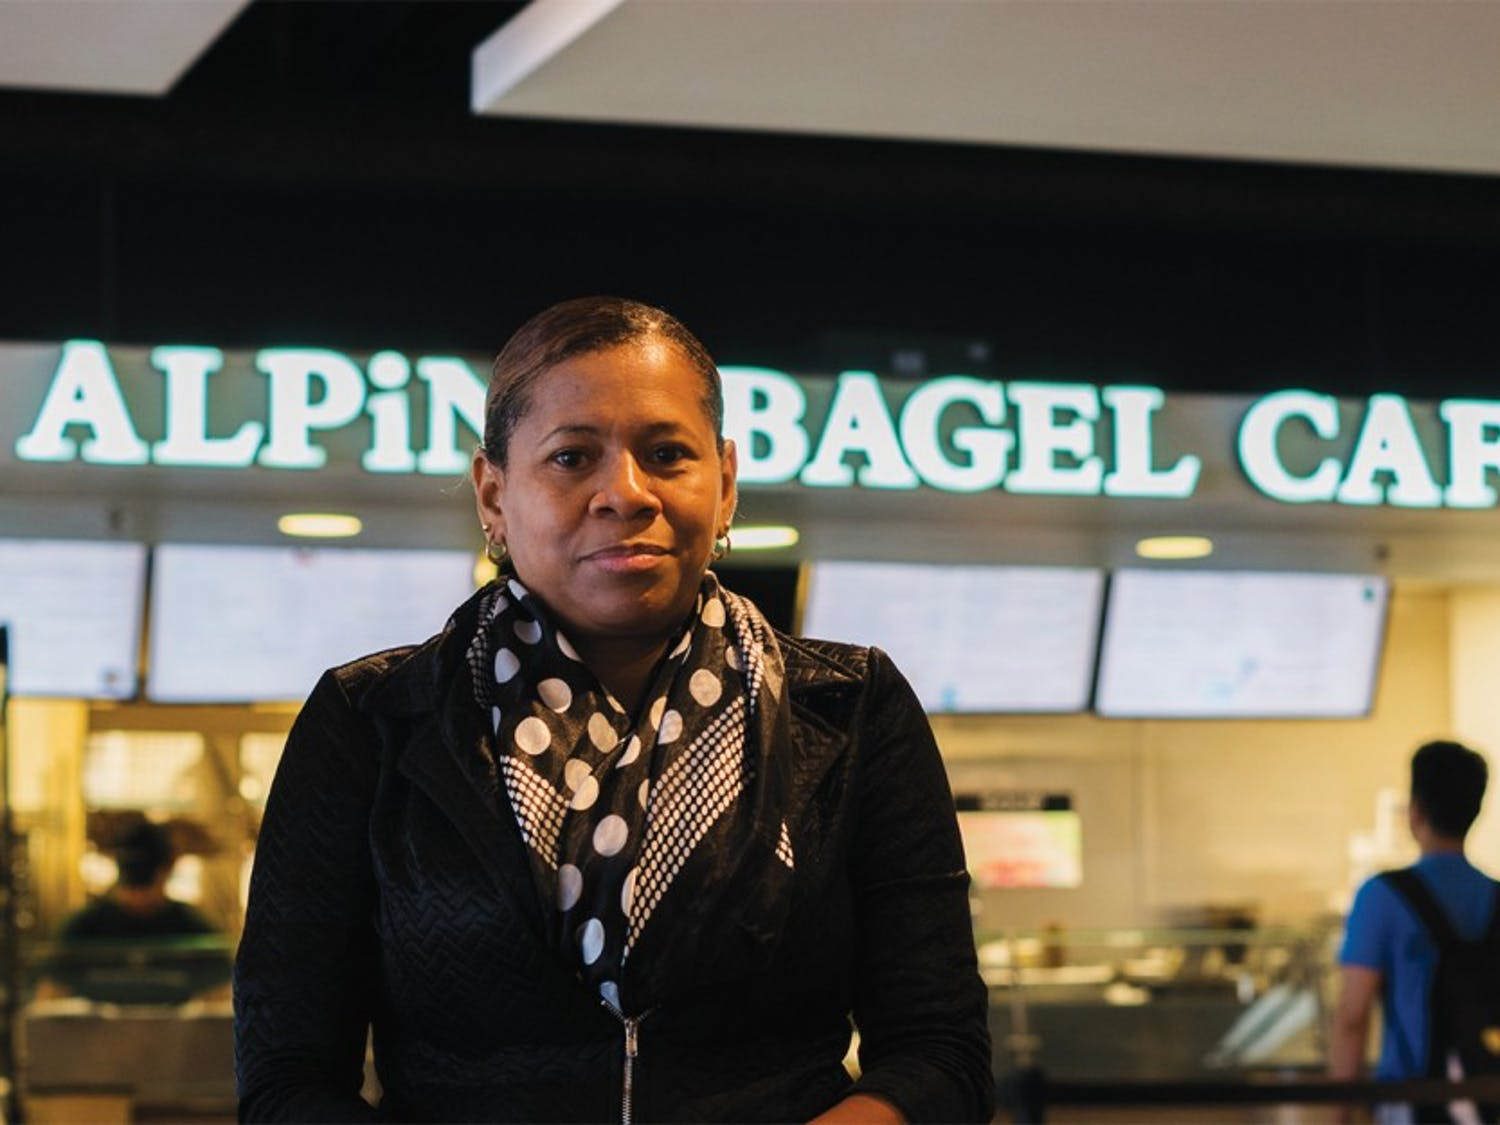 Lezlie Sumpter, a former employee of Alpine Bagel Cafe in the Student Union, poses in front of the storefront. Sumpter believes she was wrongfully fired.